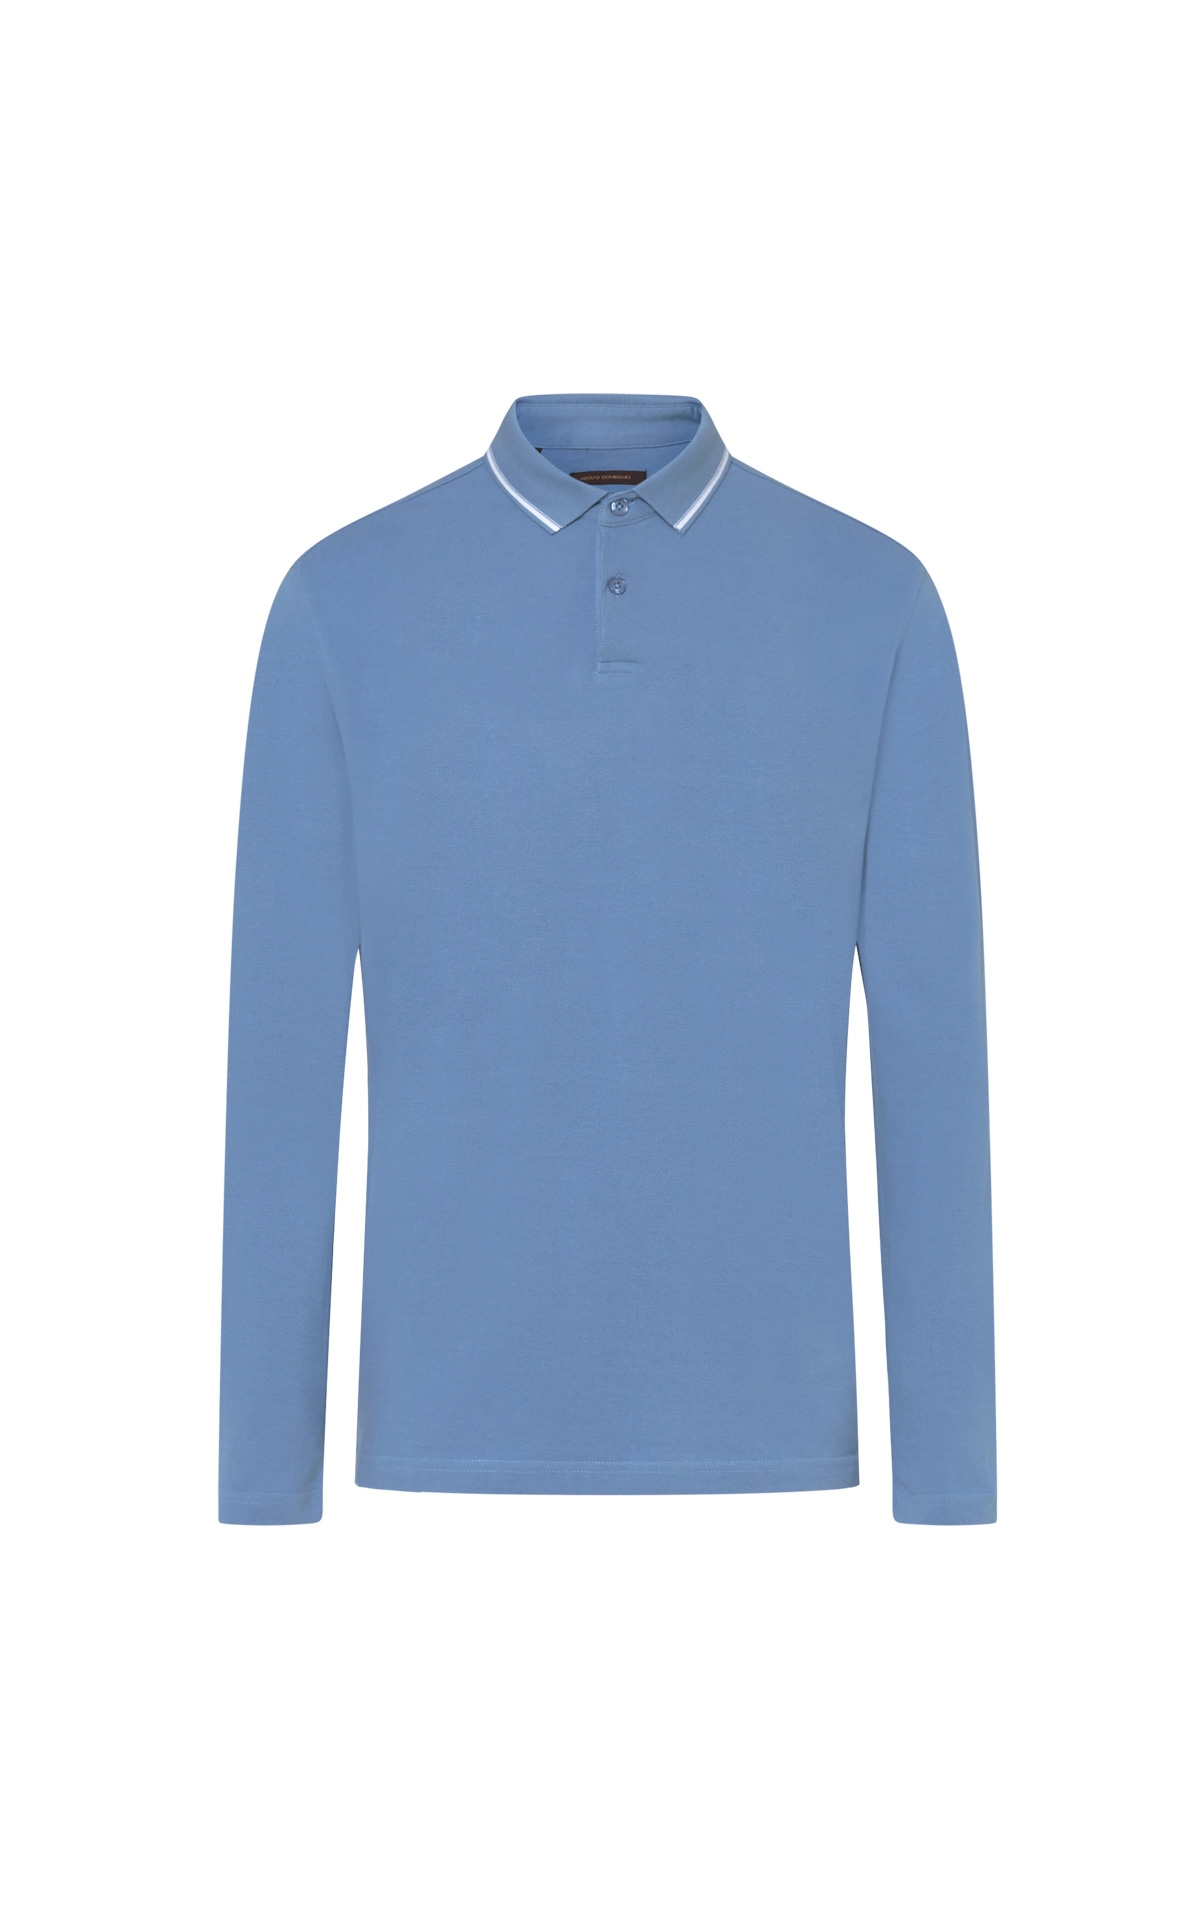 Long sleeve blue polo shirt from Adolfo Dominguez